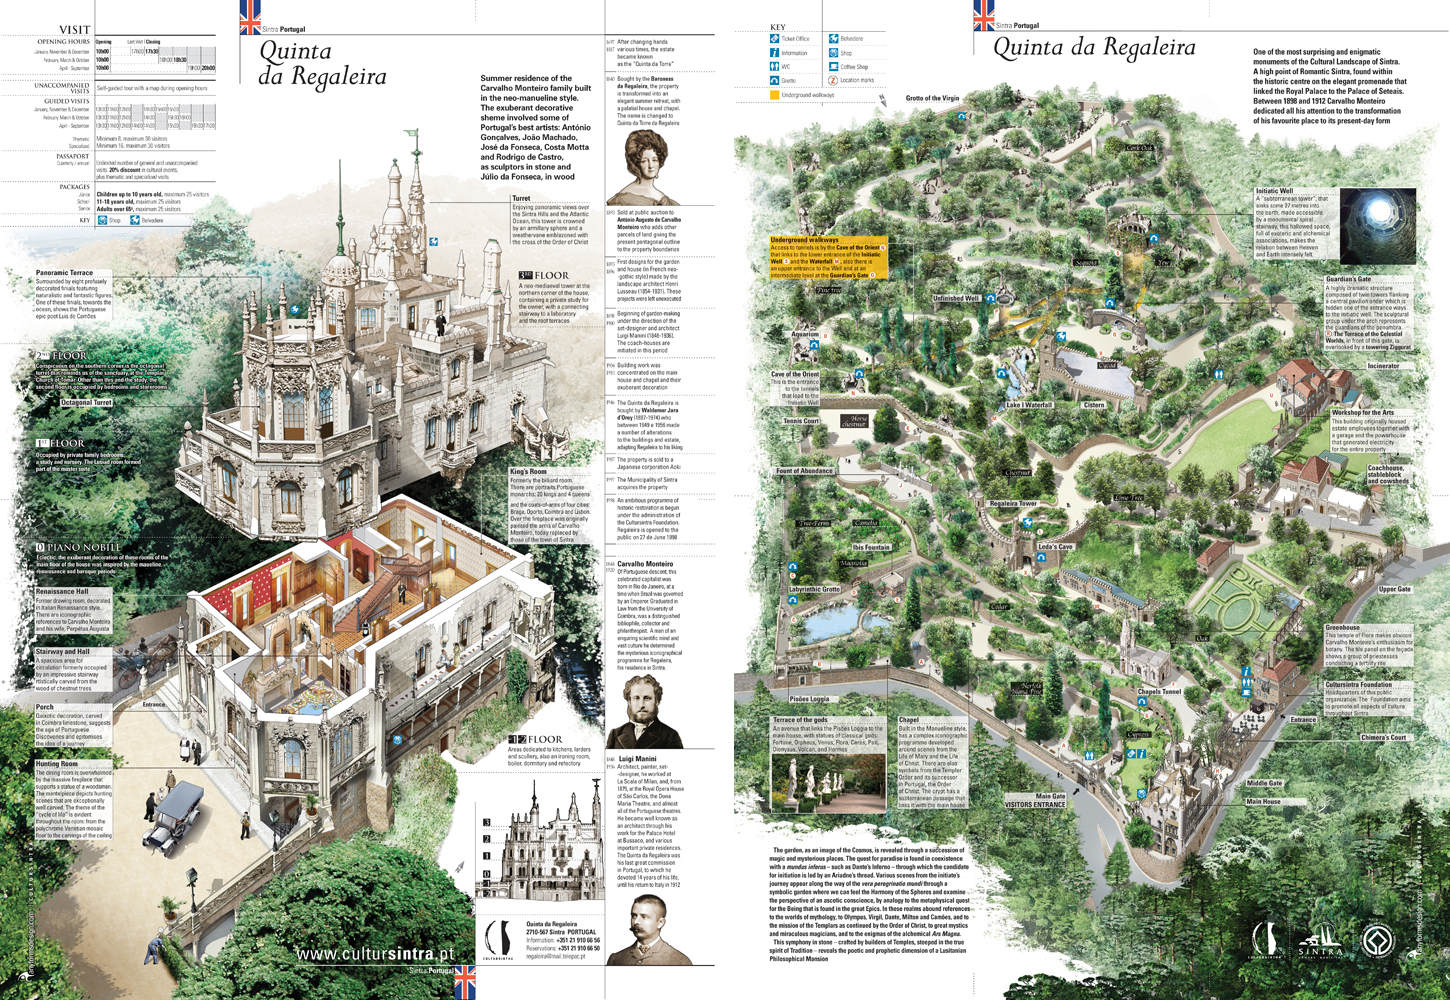 Portugal and quinta da regularia stefan poag for Jardines quinta da regaleira